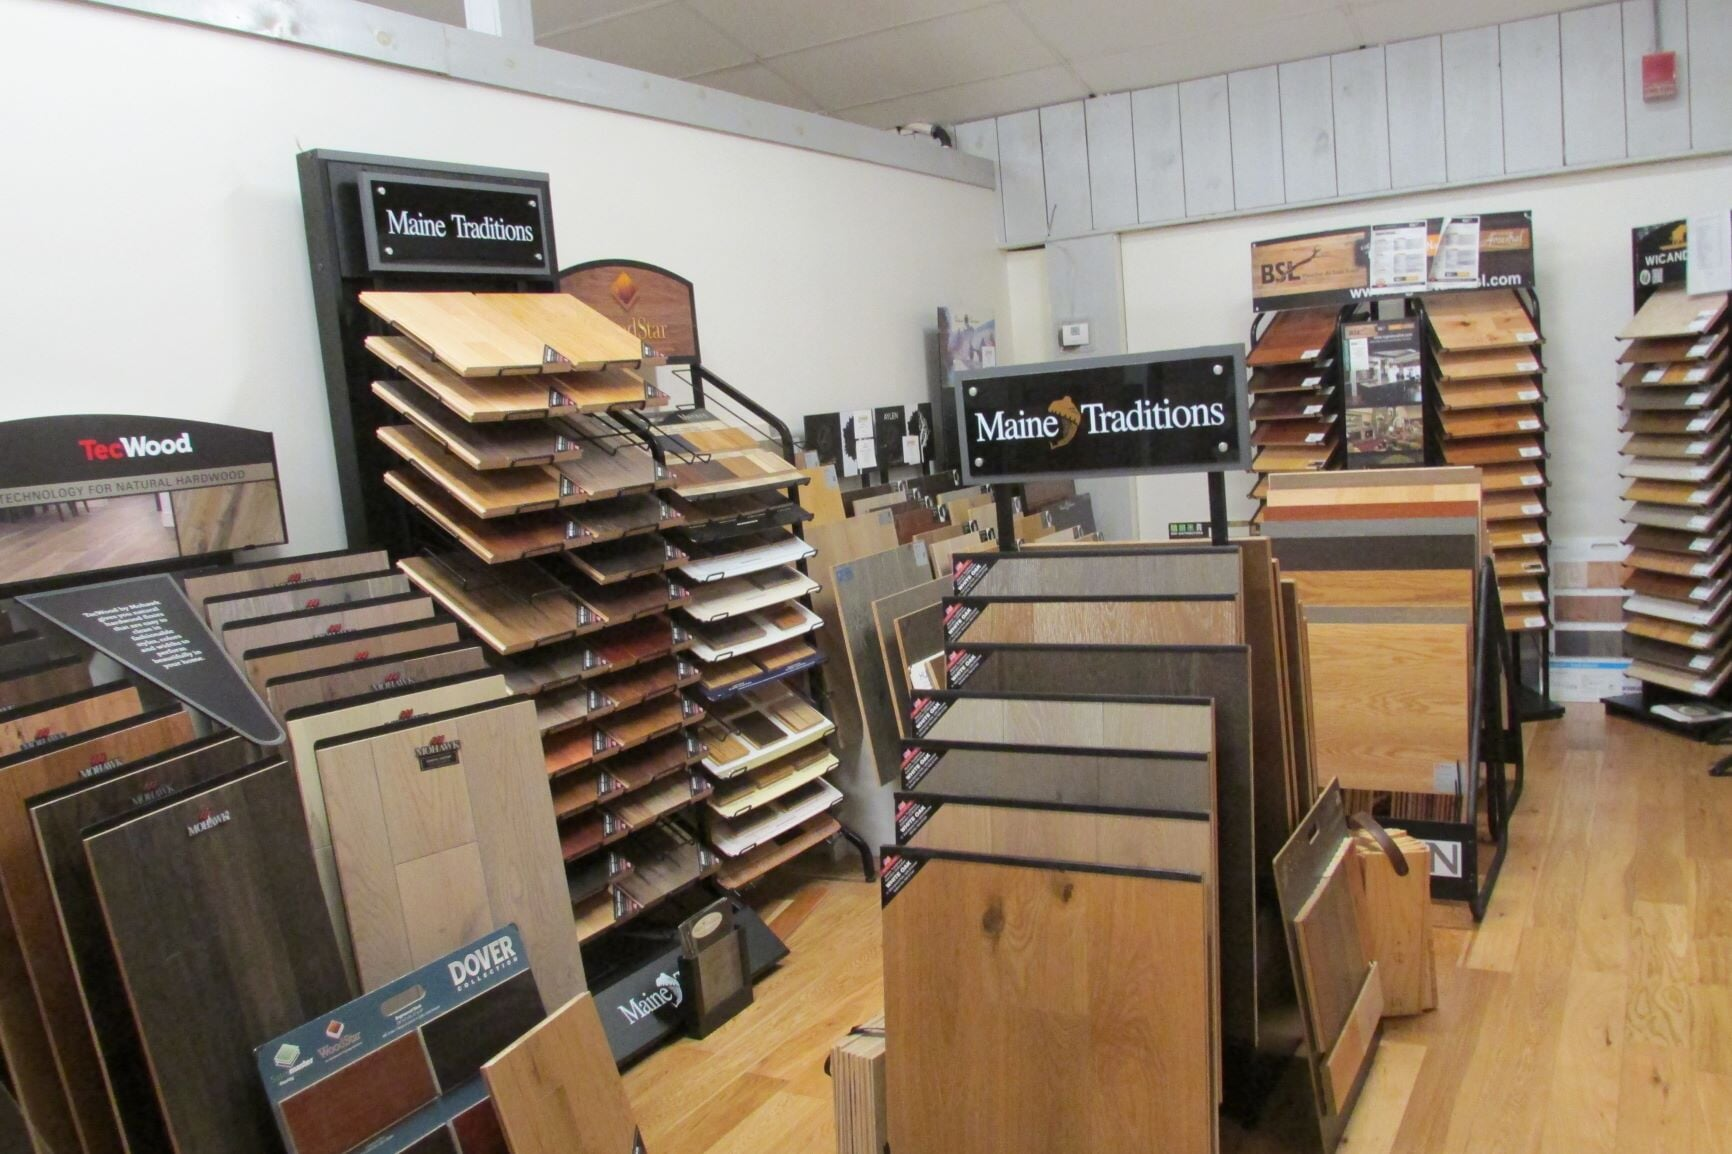 Check out the selection at Seacoast Flooring in Saco, ME